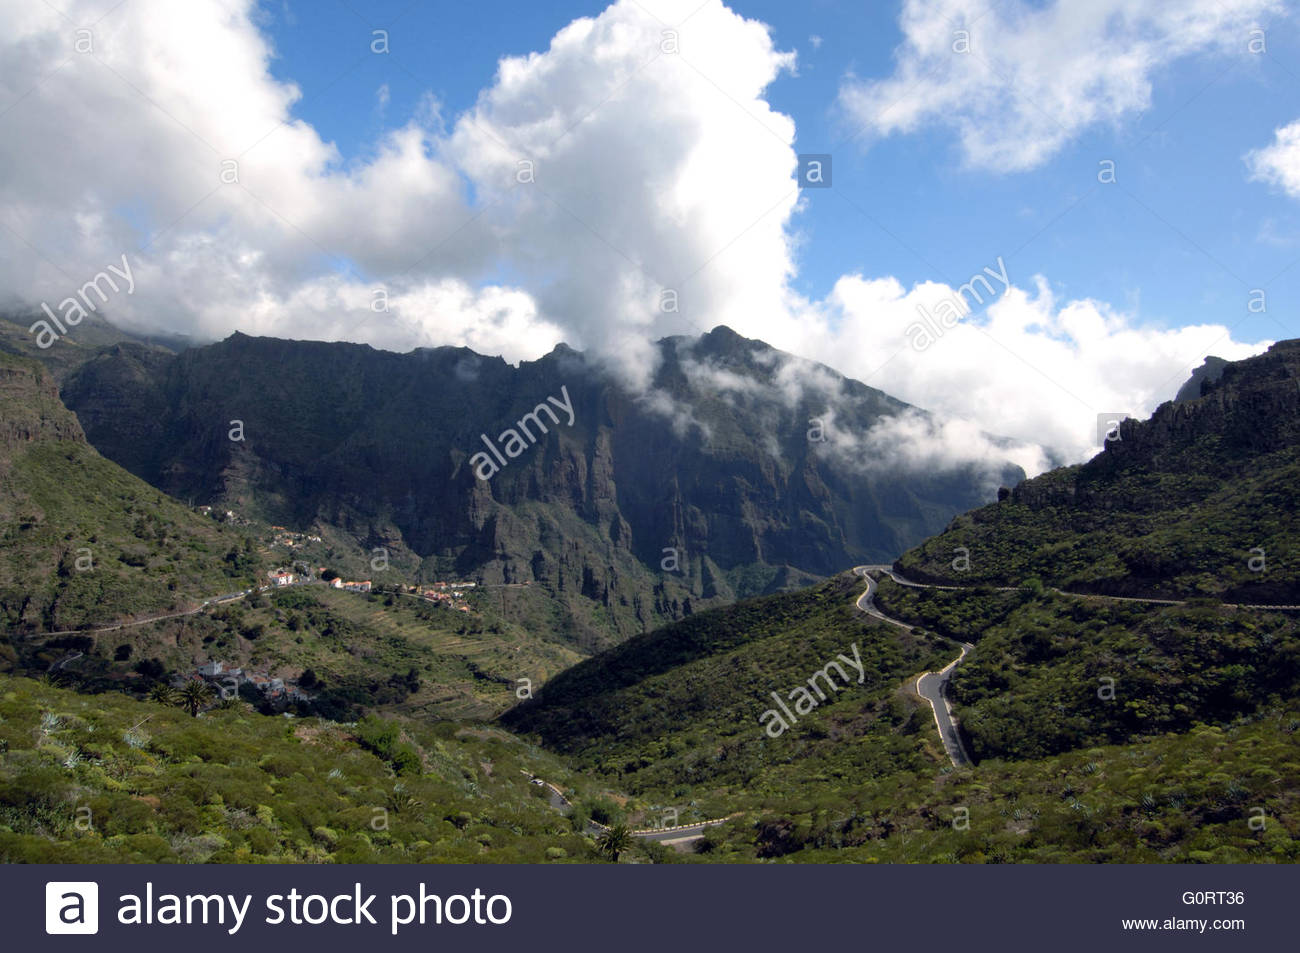 Winding road to Masca, Tenerife, Canary Islands. April 07 - Stock Image